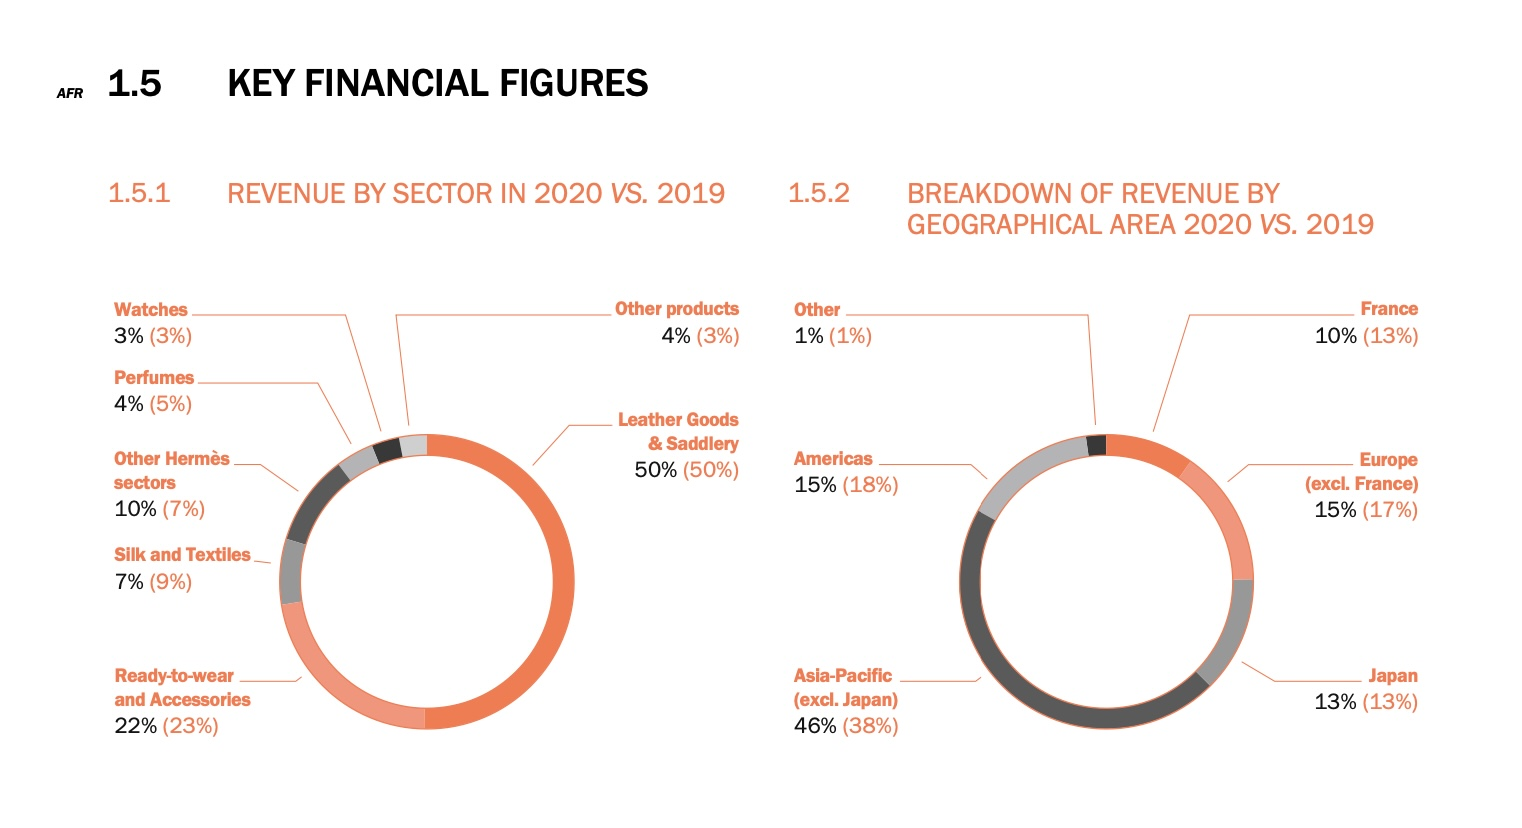 From page 26 of the Annual Report: 1.5 Key Financial Figures